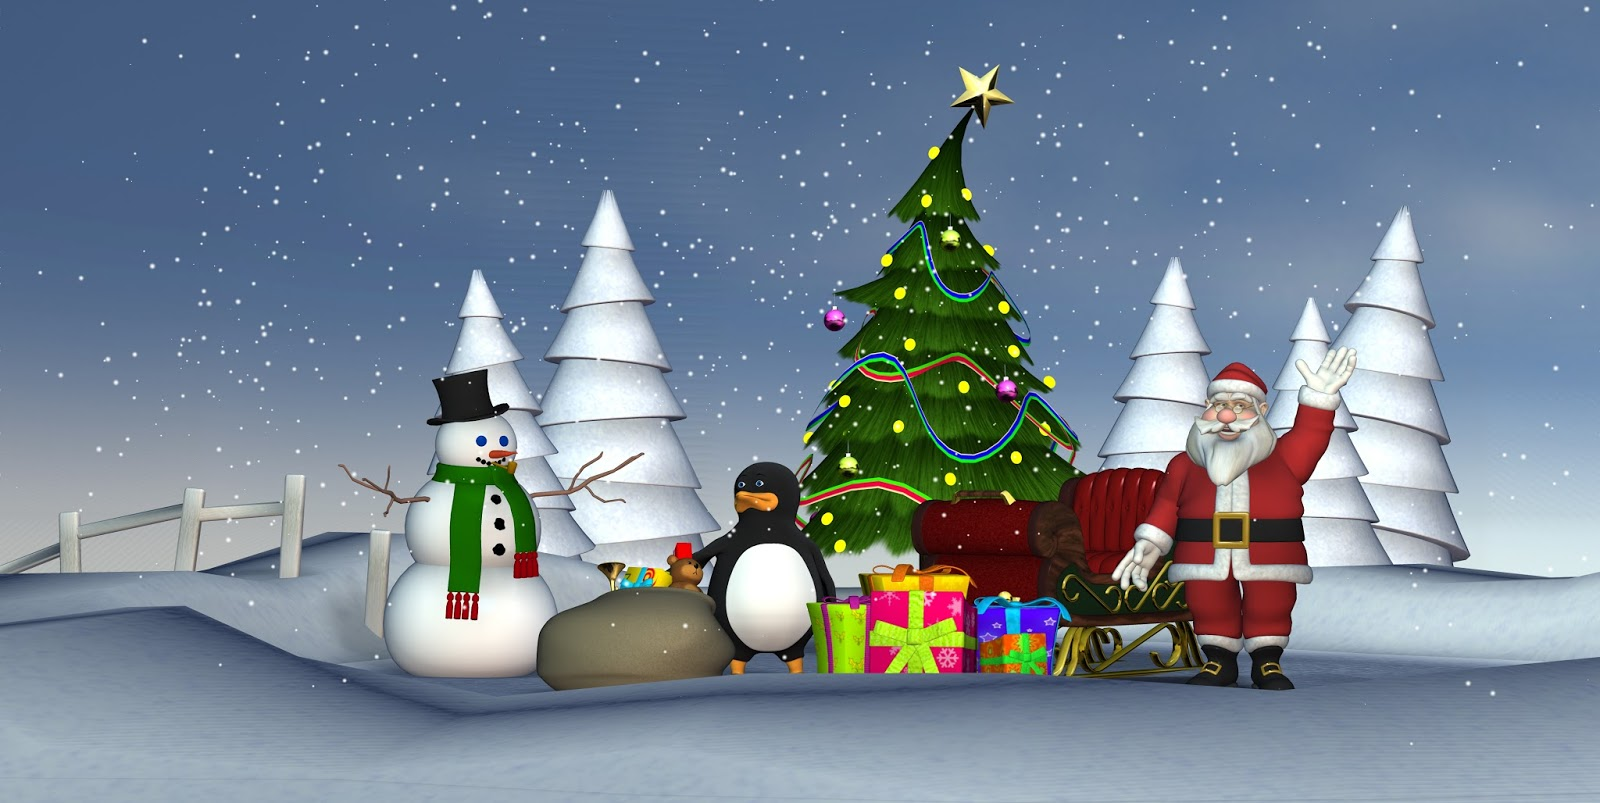 X-mas Greeting Imges Free Download